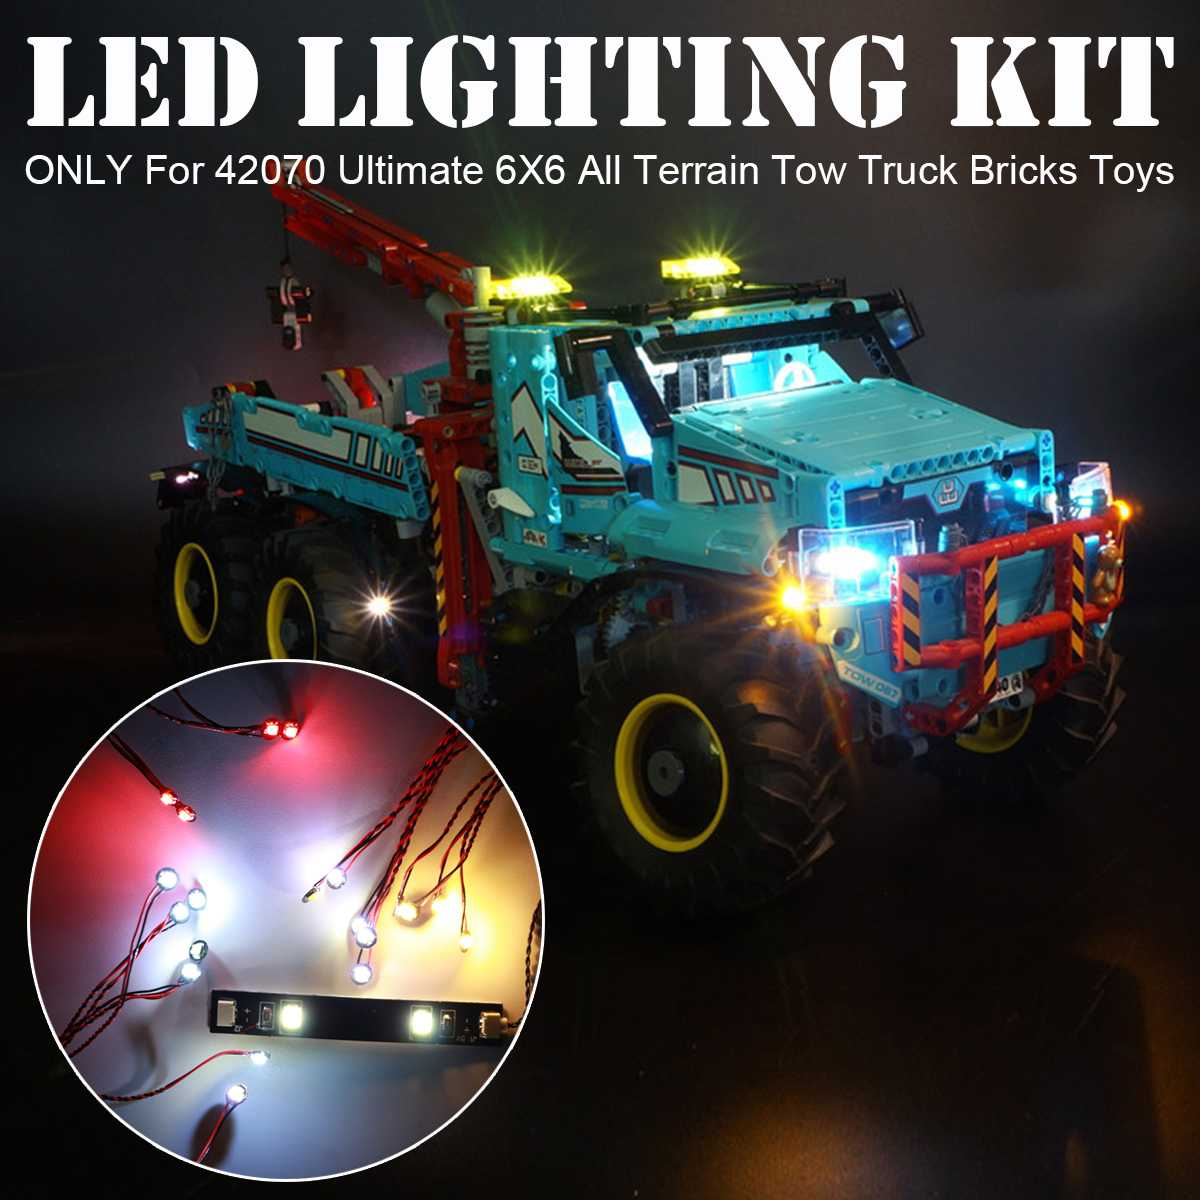 LED Light Kit for <font><b>LEGO</b></font> for <font><b>42070</b></font> Technic for Ultimate 6X6 All Terrain Tow Truck Bricks Toy (Only Light Included) image